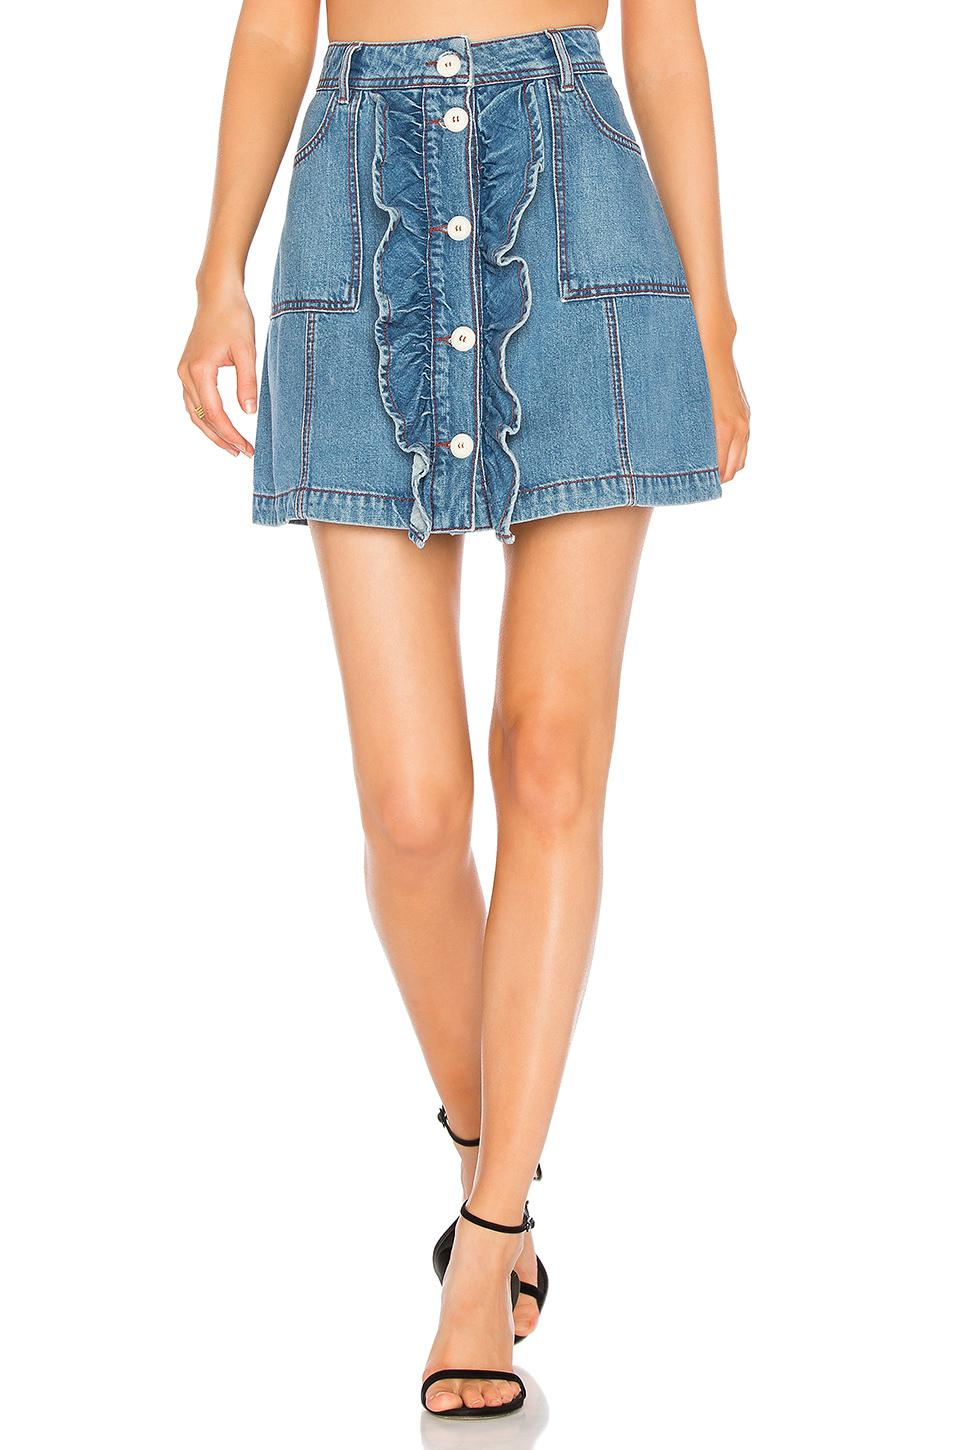 Bluebell denim skirt Ganni Cheap Sale Very Cheap Zjg4x